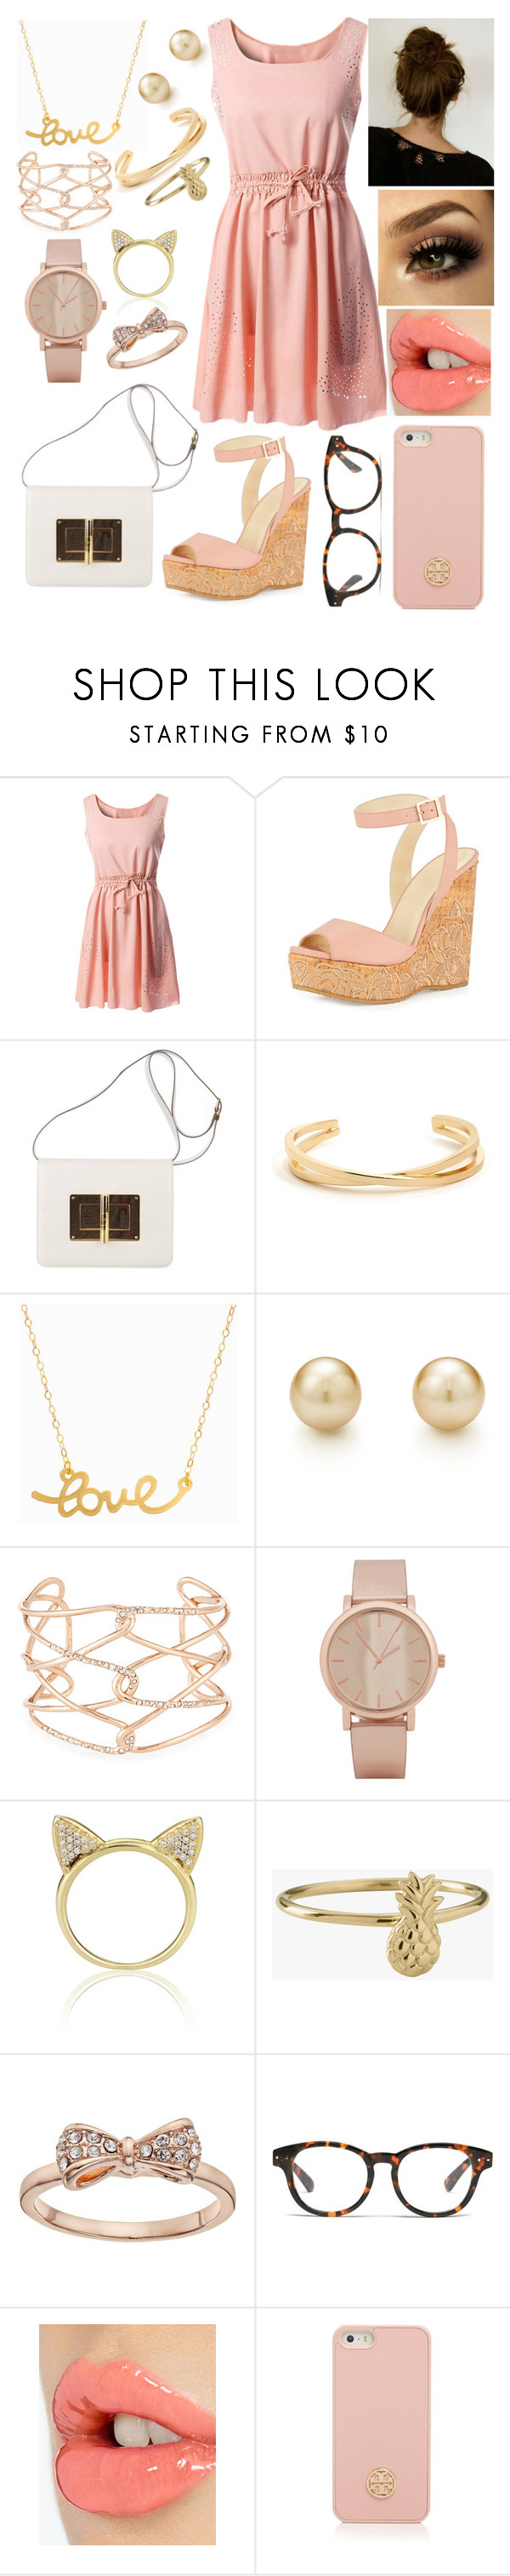 |Baby say yeah and let me kiss you| by mmckenna30 on Polyvore featuring Jimmy Choo, Tom Ford, Minnie Grace, Alexis Bittar, ALDO, LC Lauren Conrad, Aamaya by priyanka, Tory Burch, Madewell and Charlotte Tilbury